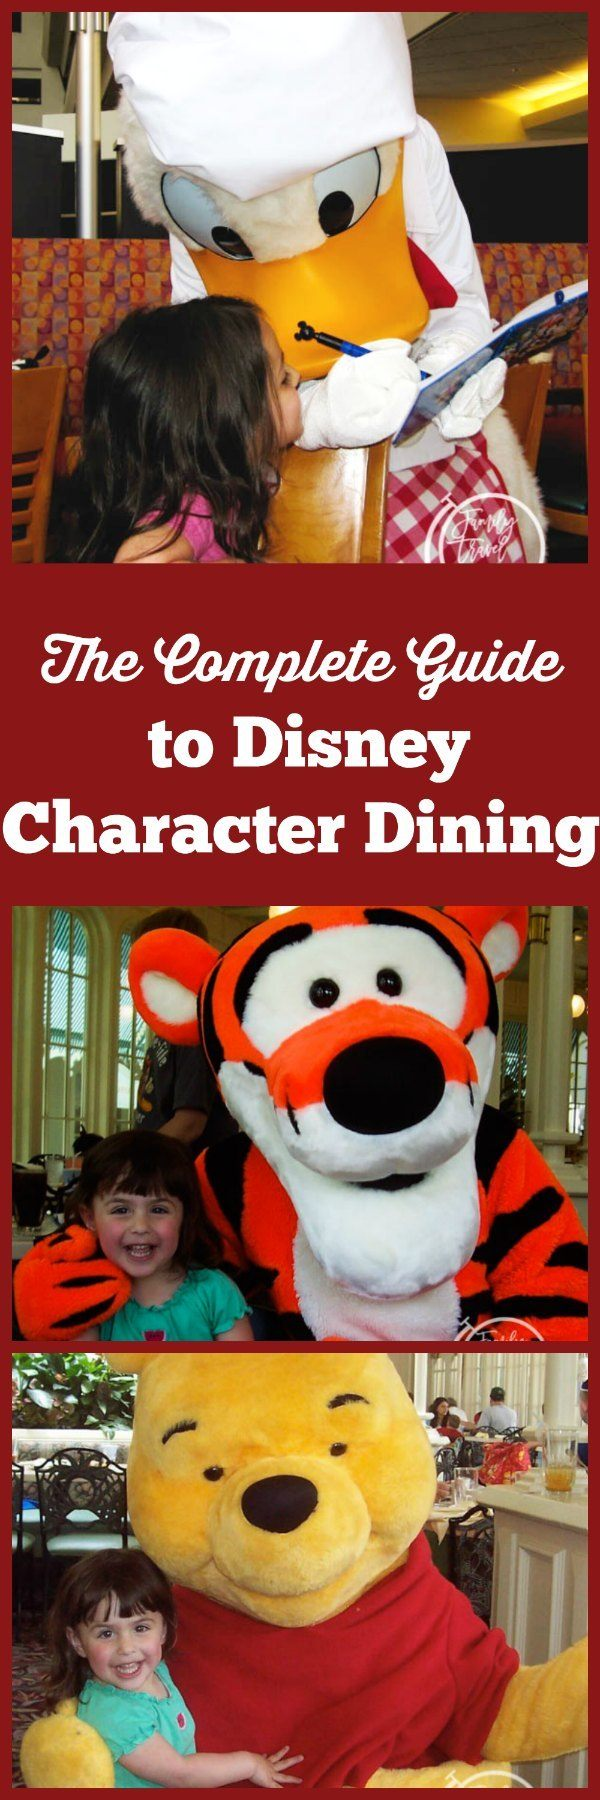 The complete guide to Disney character dining, including character dining in the parks and at the resort hotels.